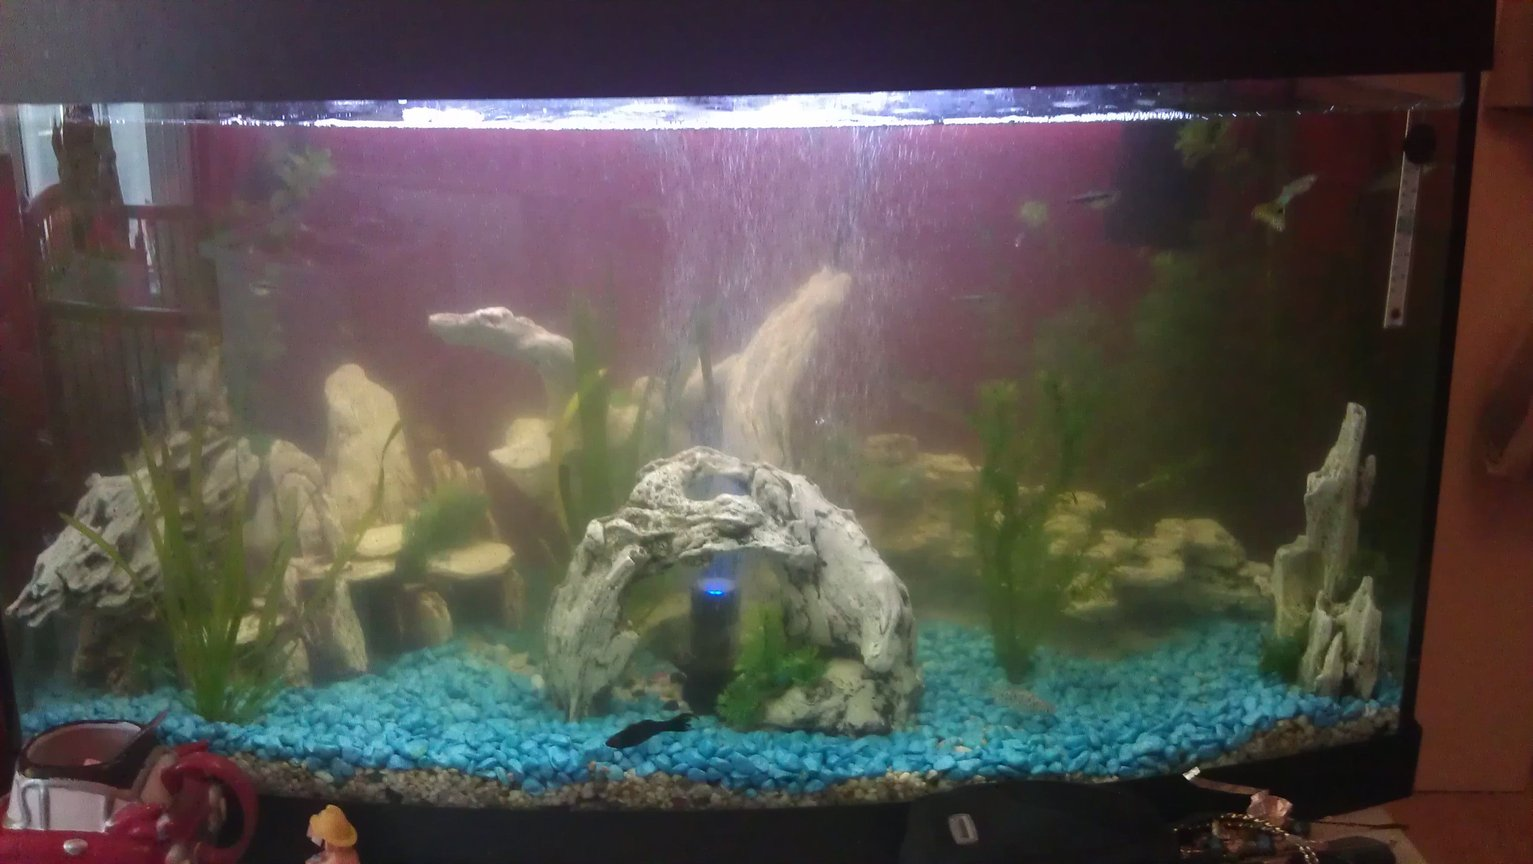 fish tank picture - Clearer now.